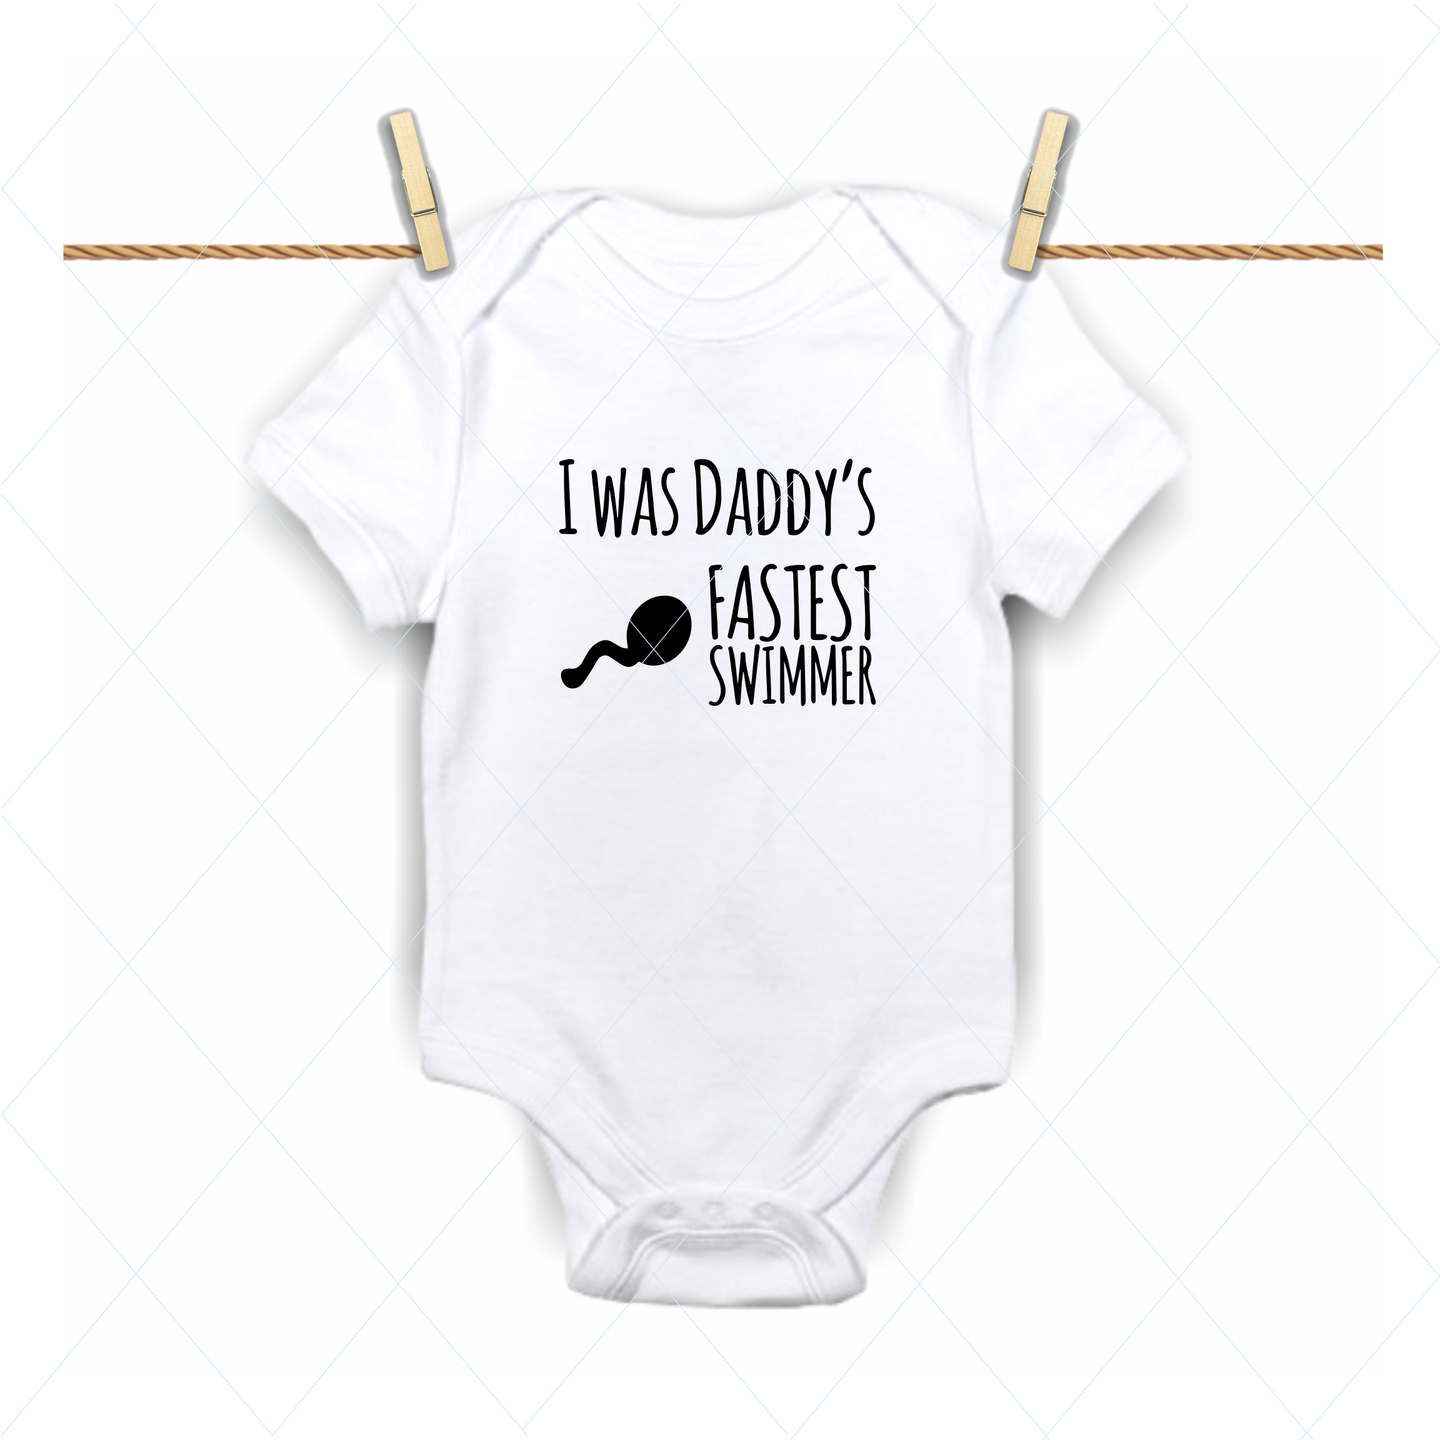 Daddy's fastest swimmer - SVG